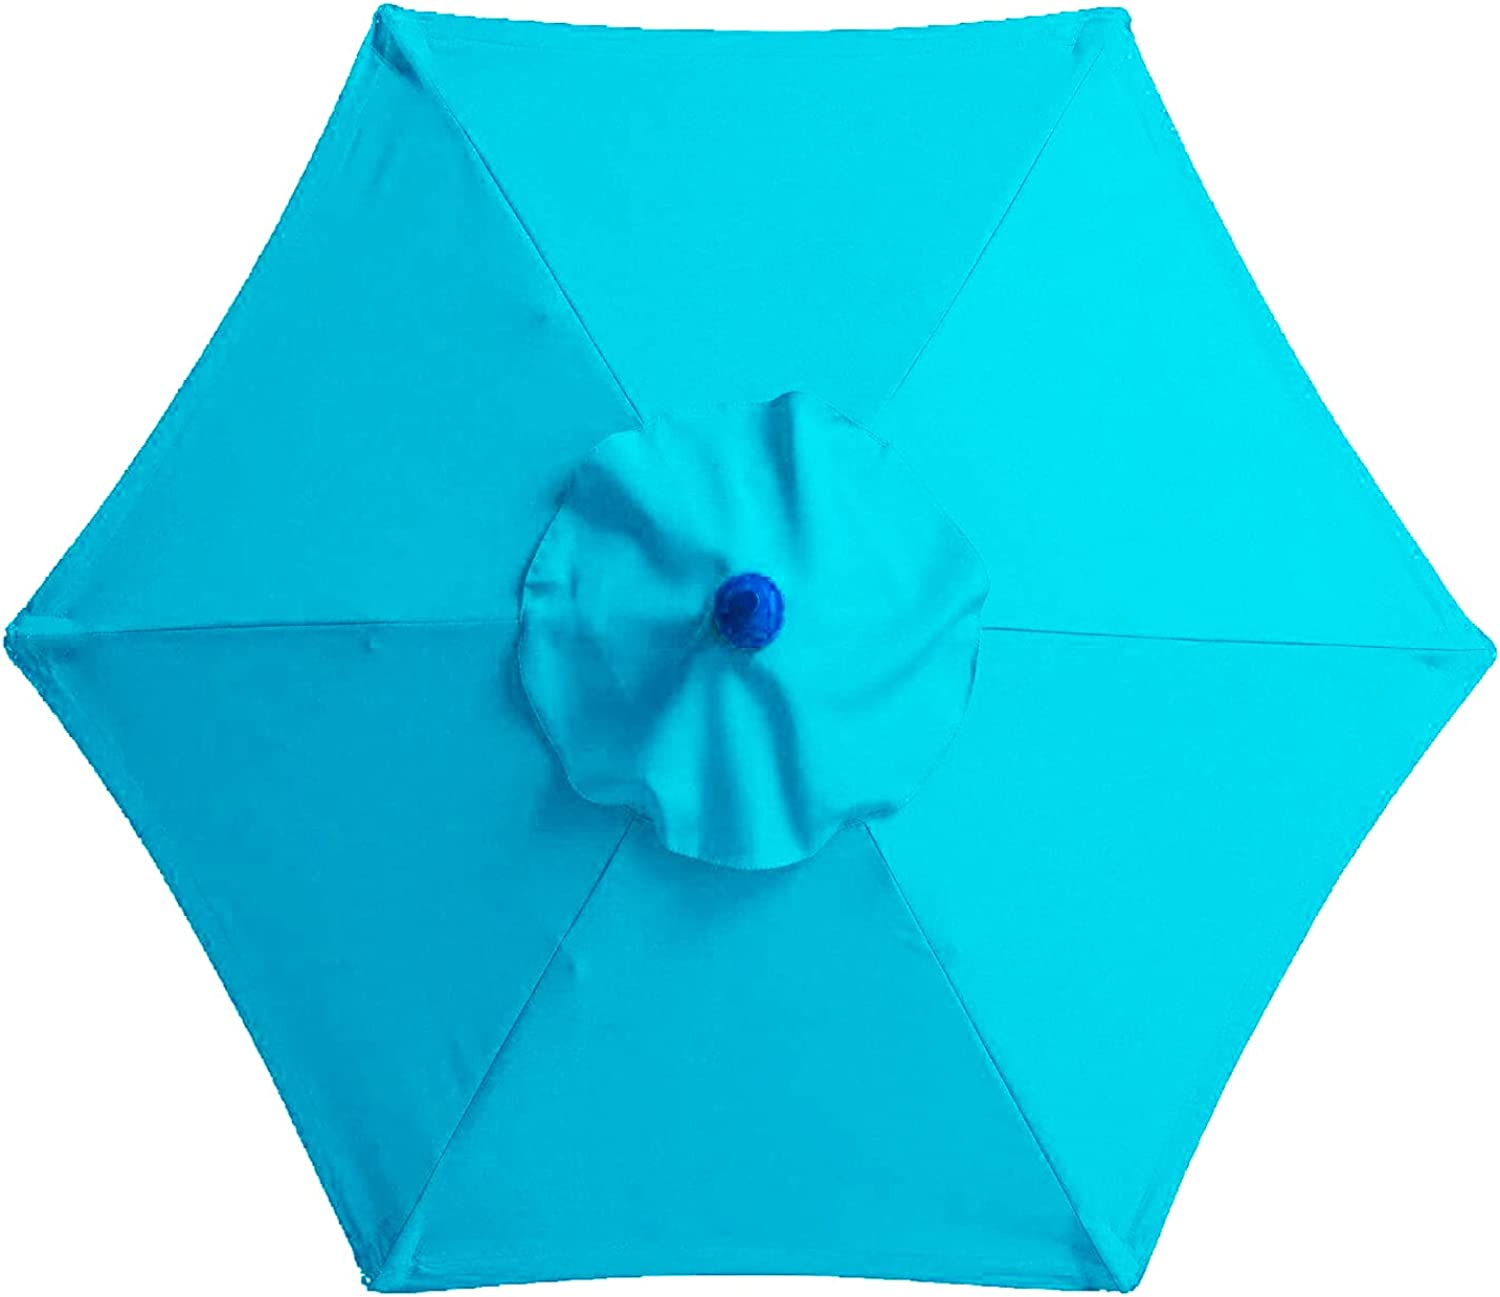 Rylod 8.8ft Patio Umbrella Market 5 ☆ popular Re Limited time sale Table Deck Outdoor